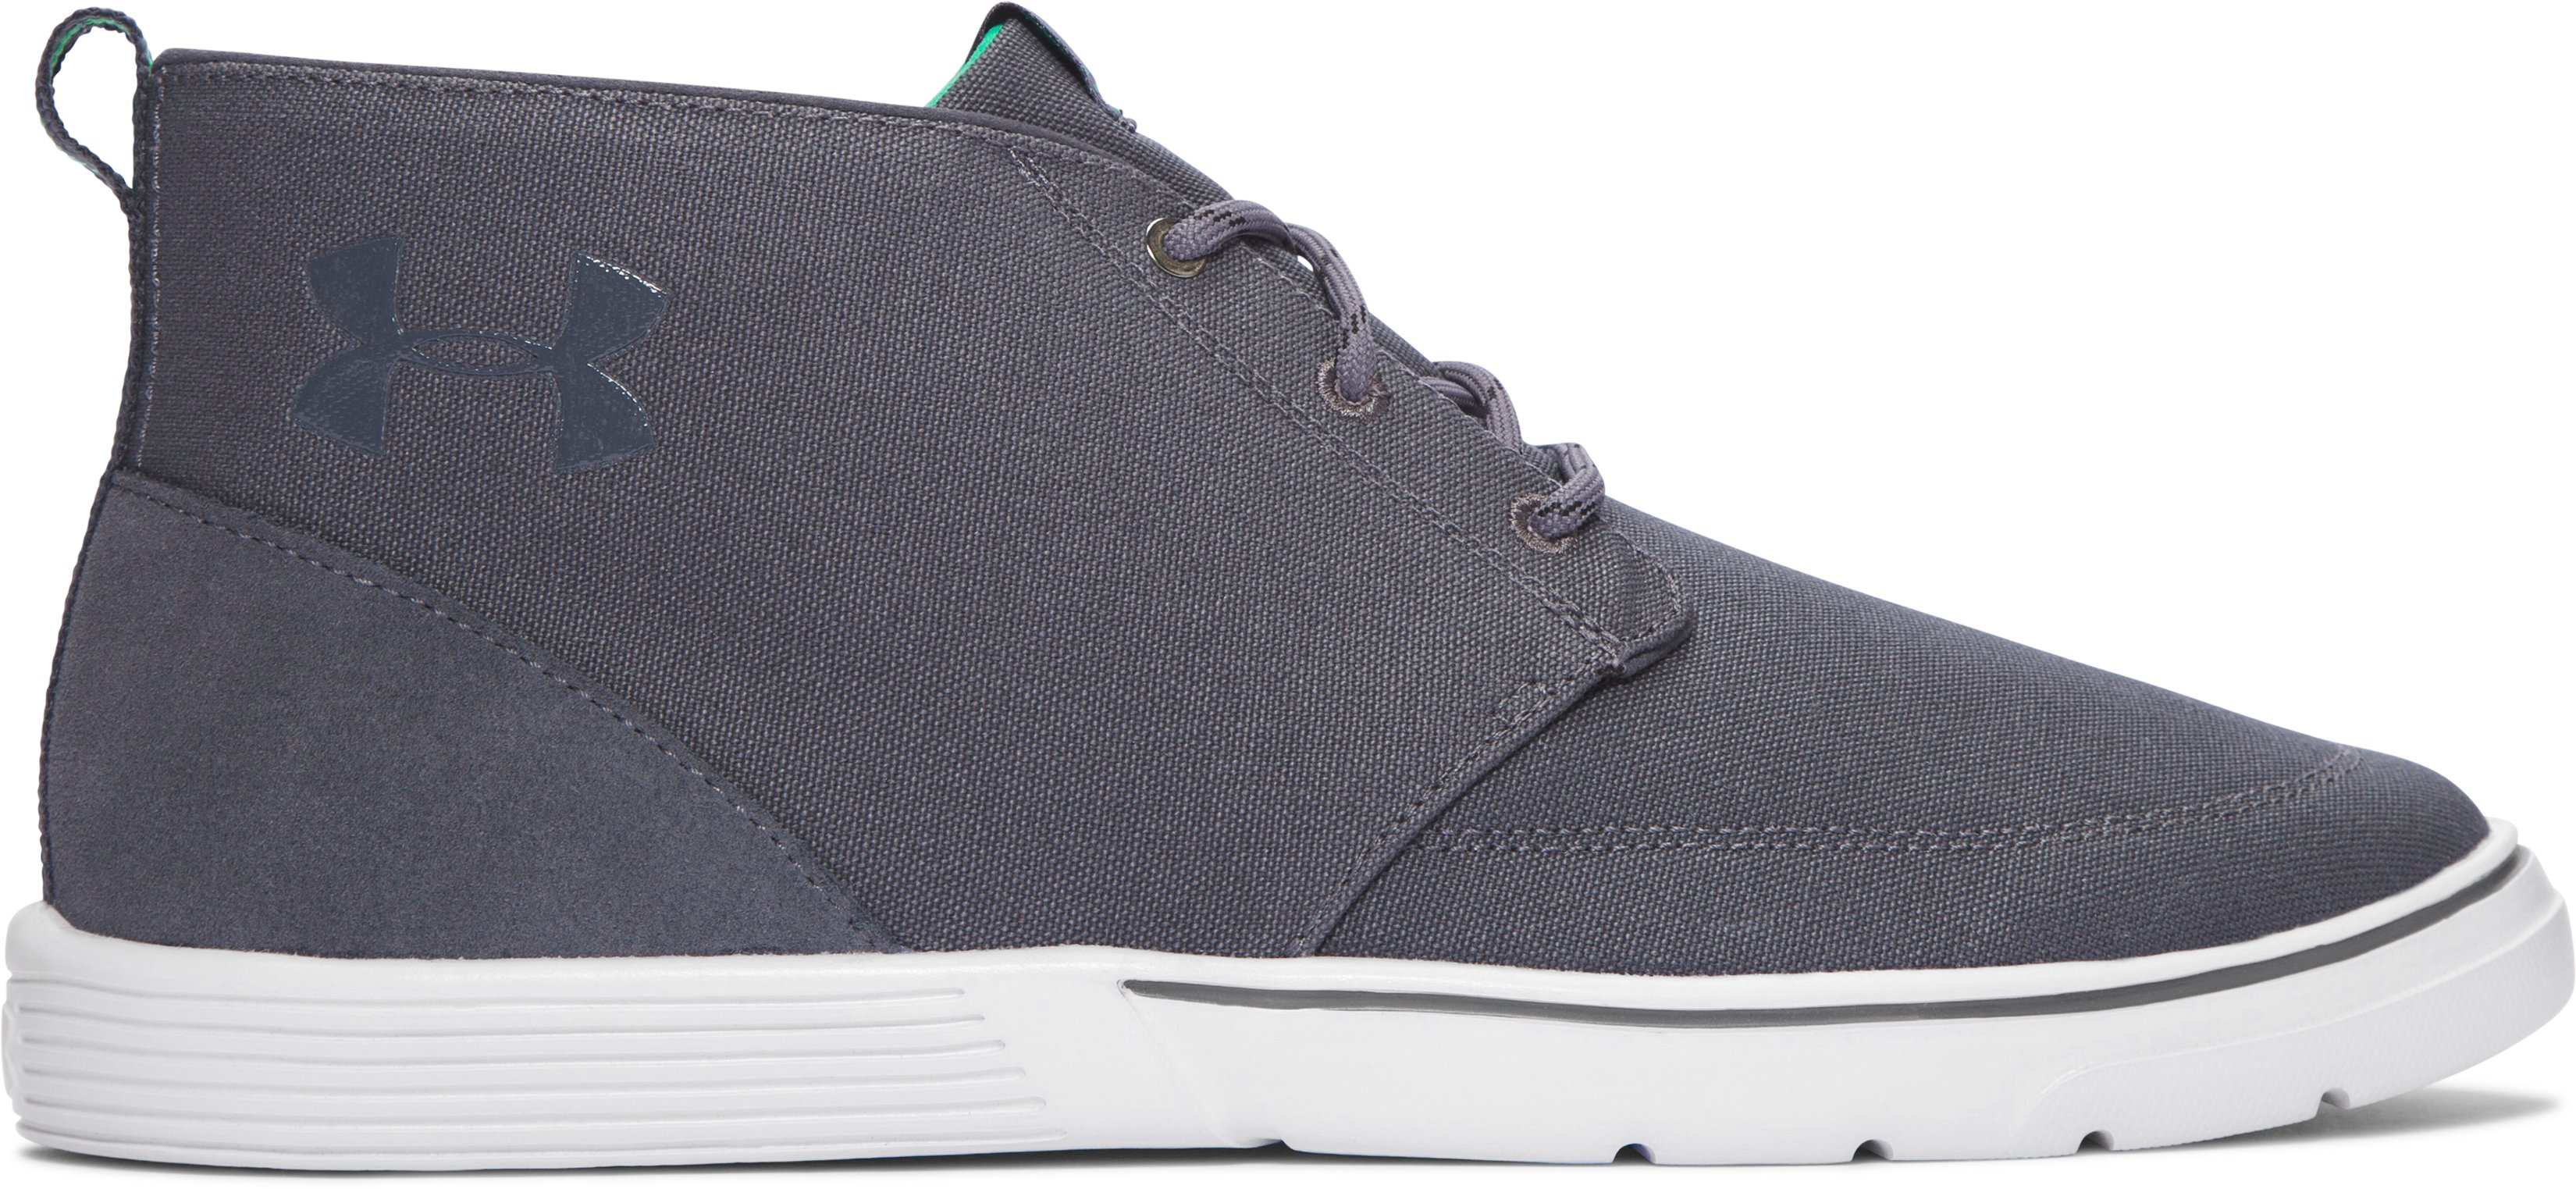 Men's UA Street Encounter Mid Shoes, GRAY WOLF, undefined